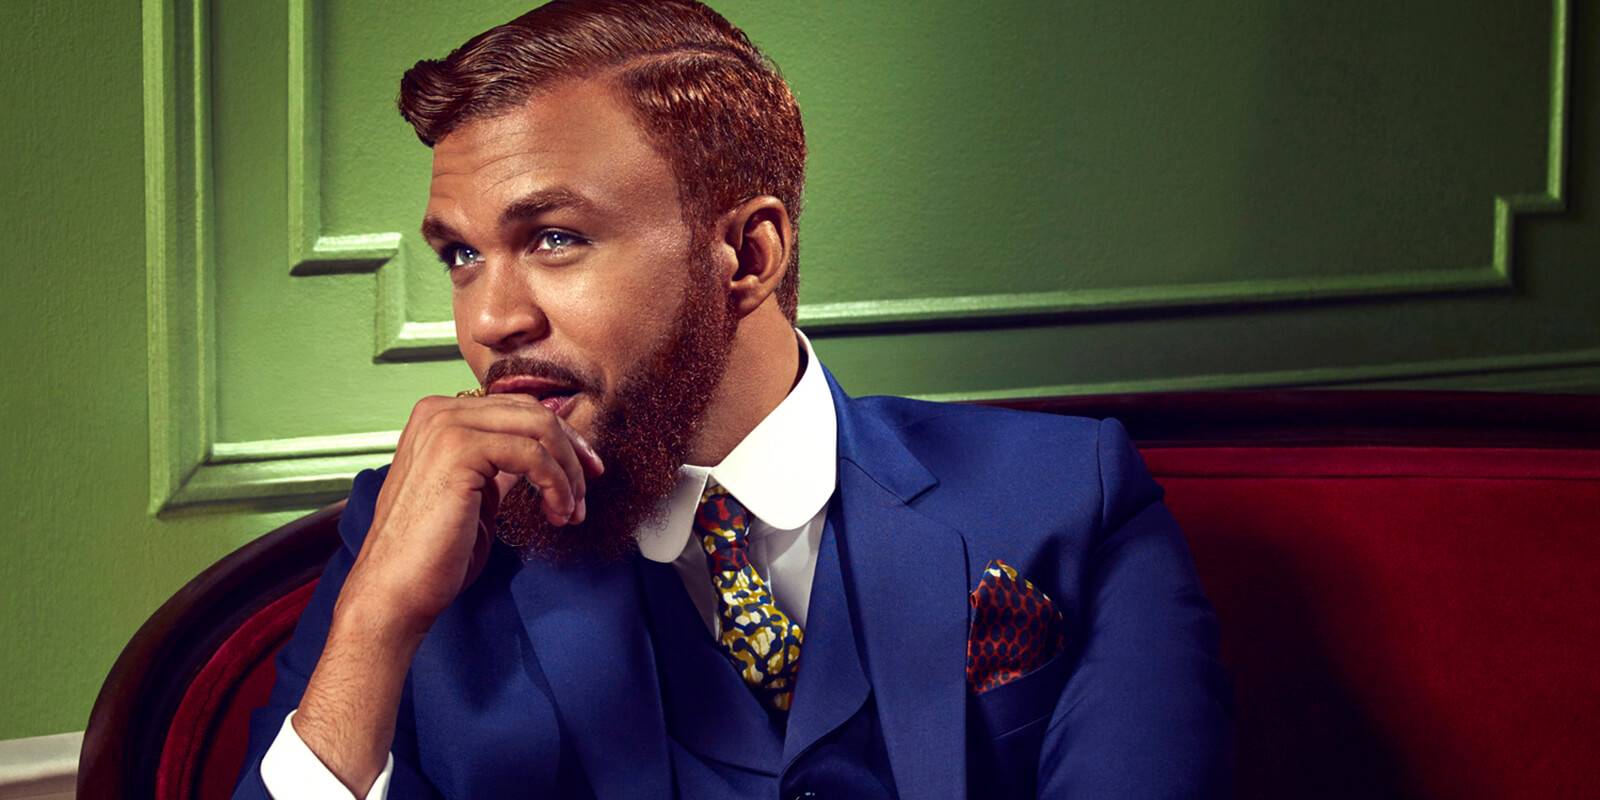 To Man Or Not To Man: How To Be A Classic Man, Not A ...